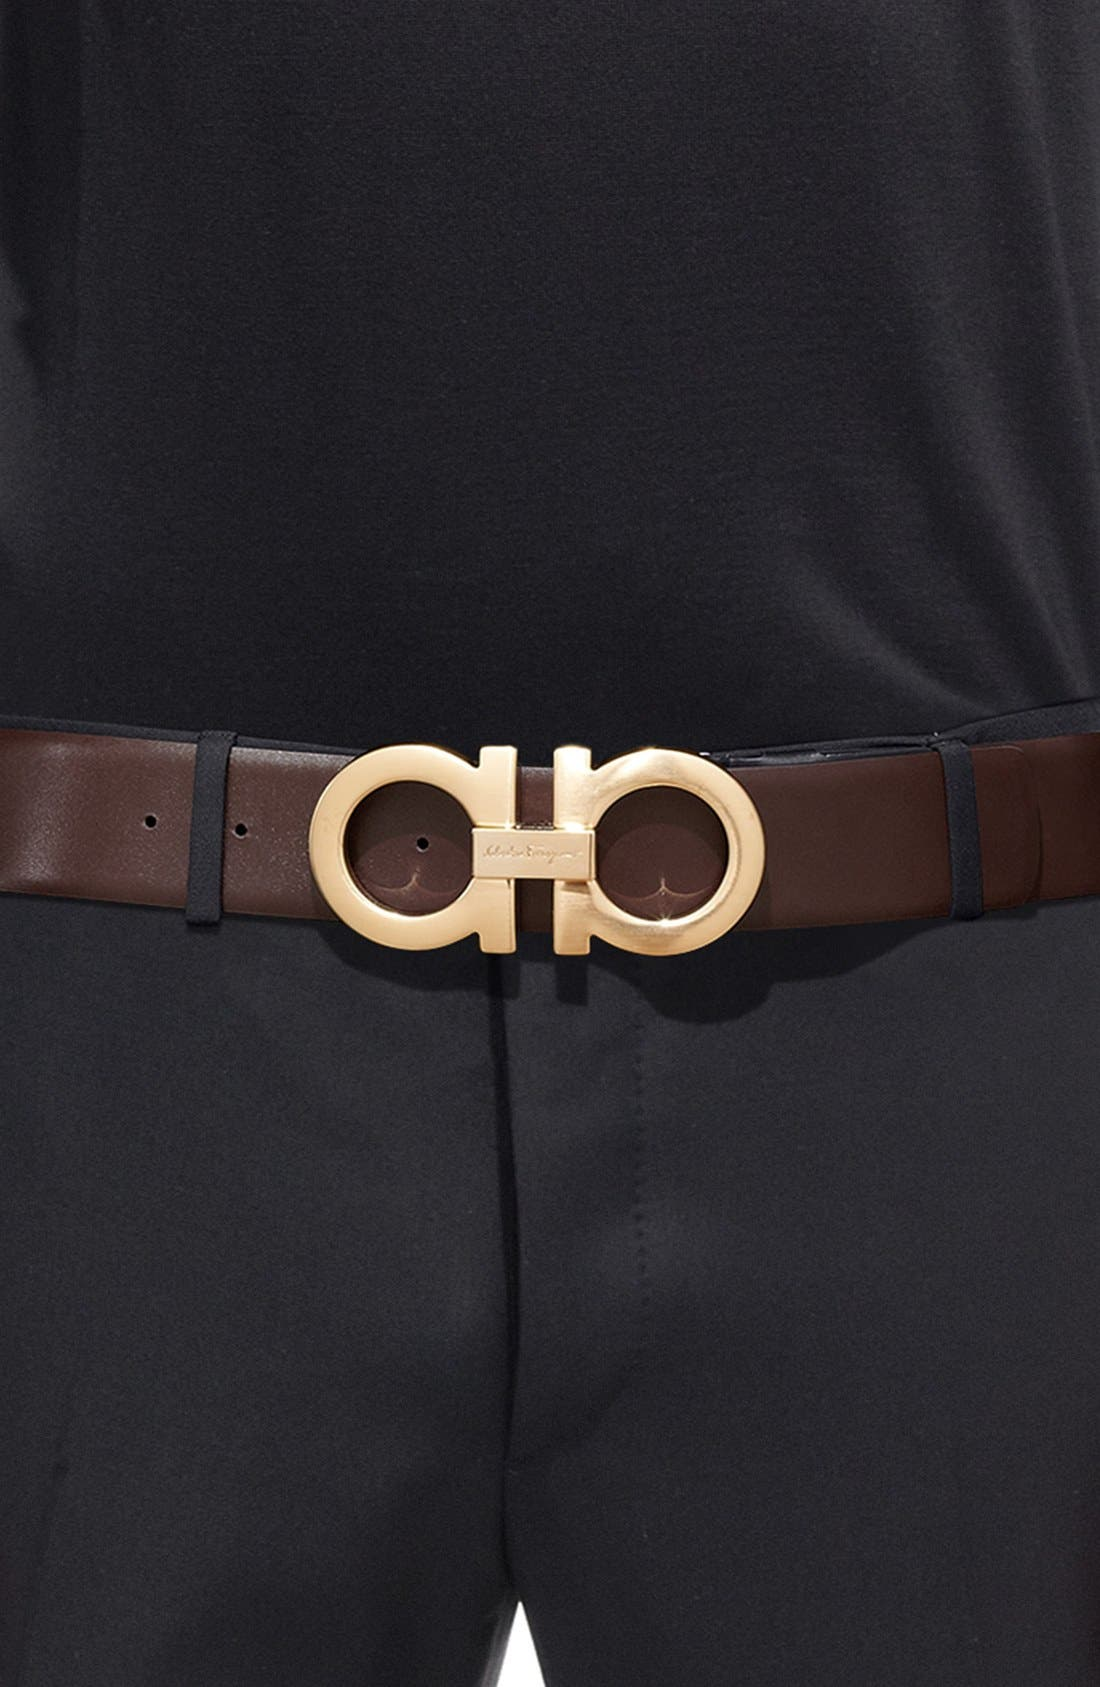 Reversible Calfskin Belt,                             Alternate thumbnail 6, color,                             001